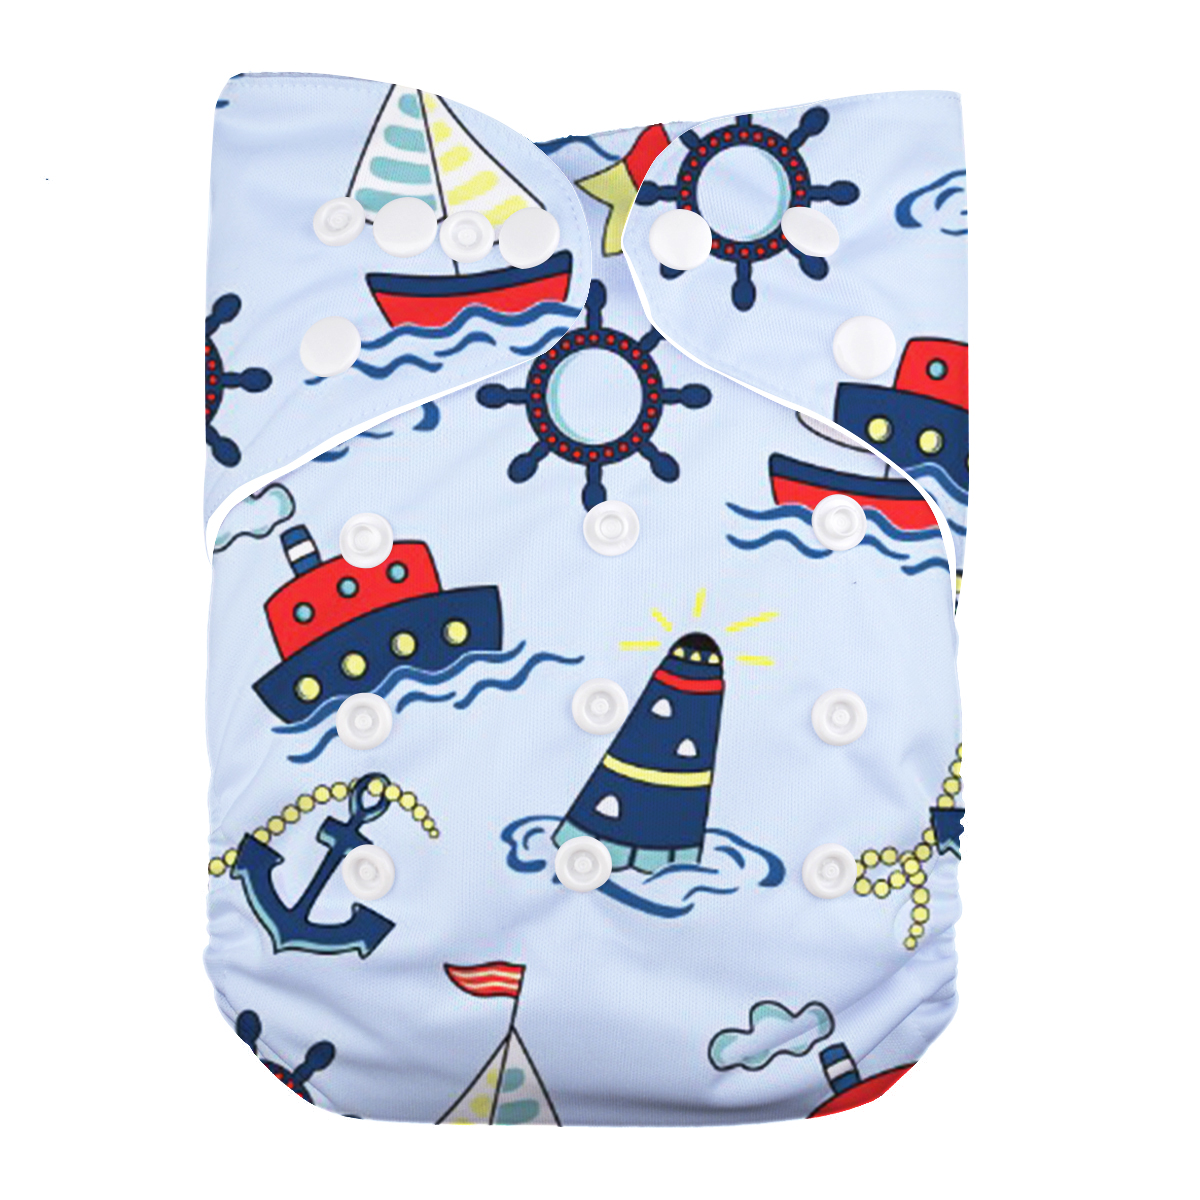 LilBit New Baby Washable Cloth Diaper Cover Cartoon Animal Adjustable Nappy Reusable Cloth Diapers Available 0-2years 3-13kg